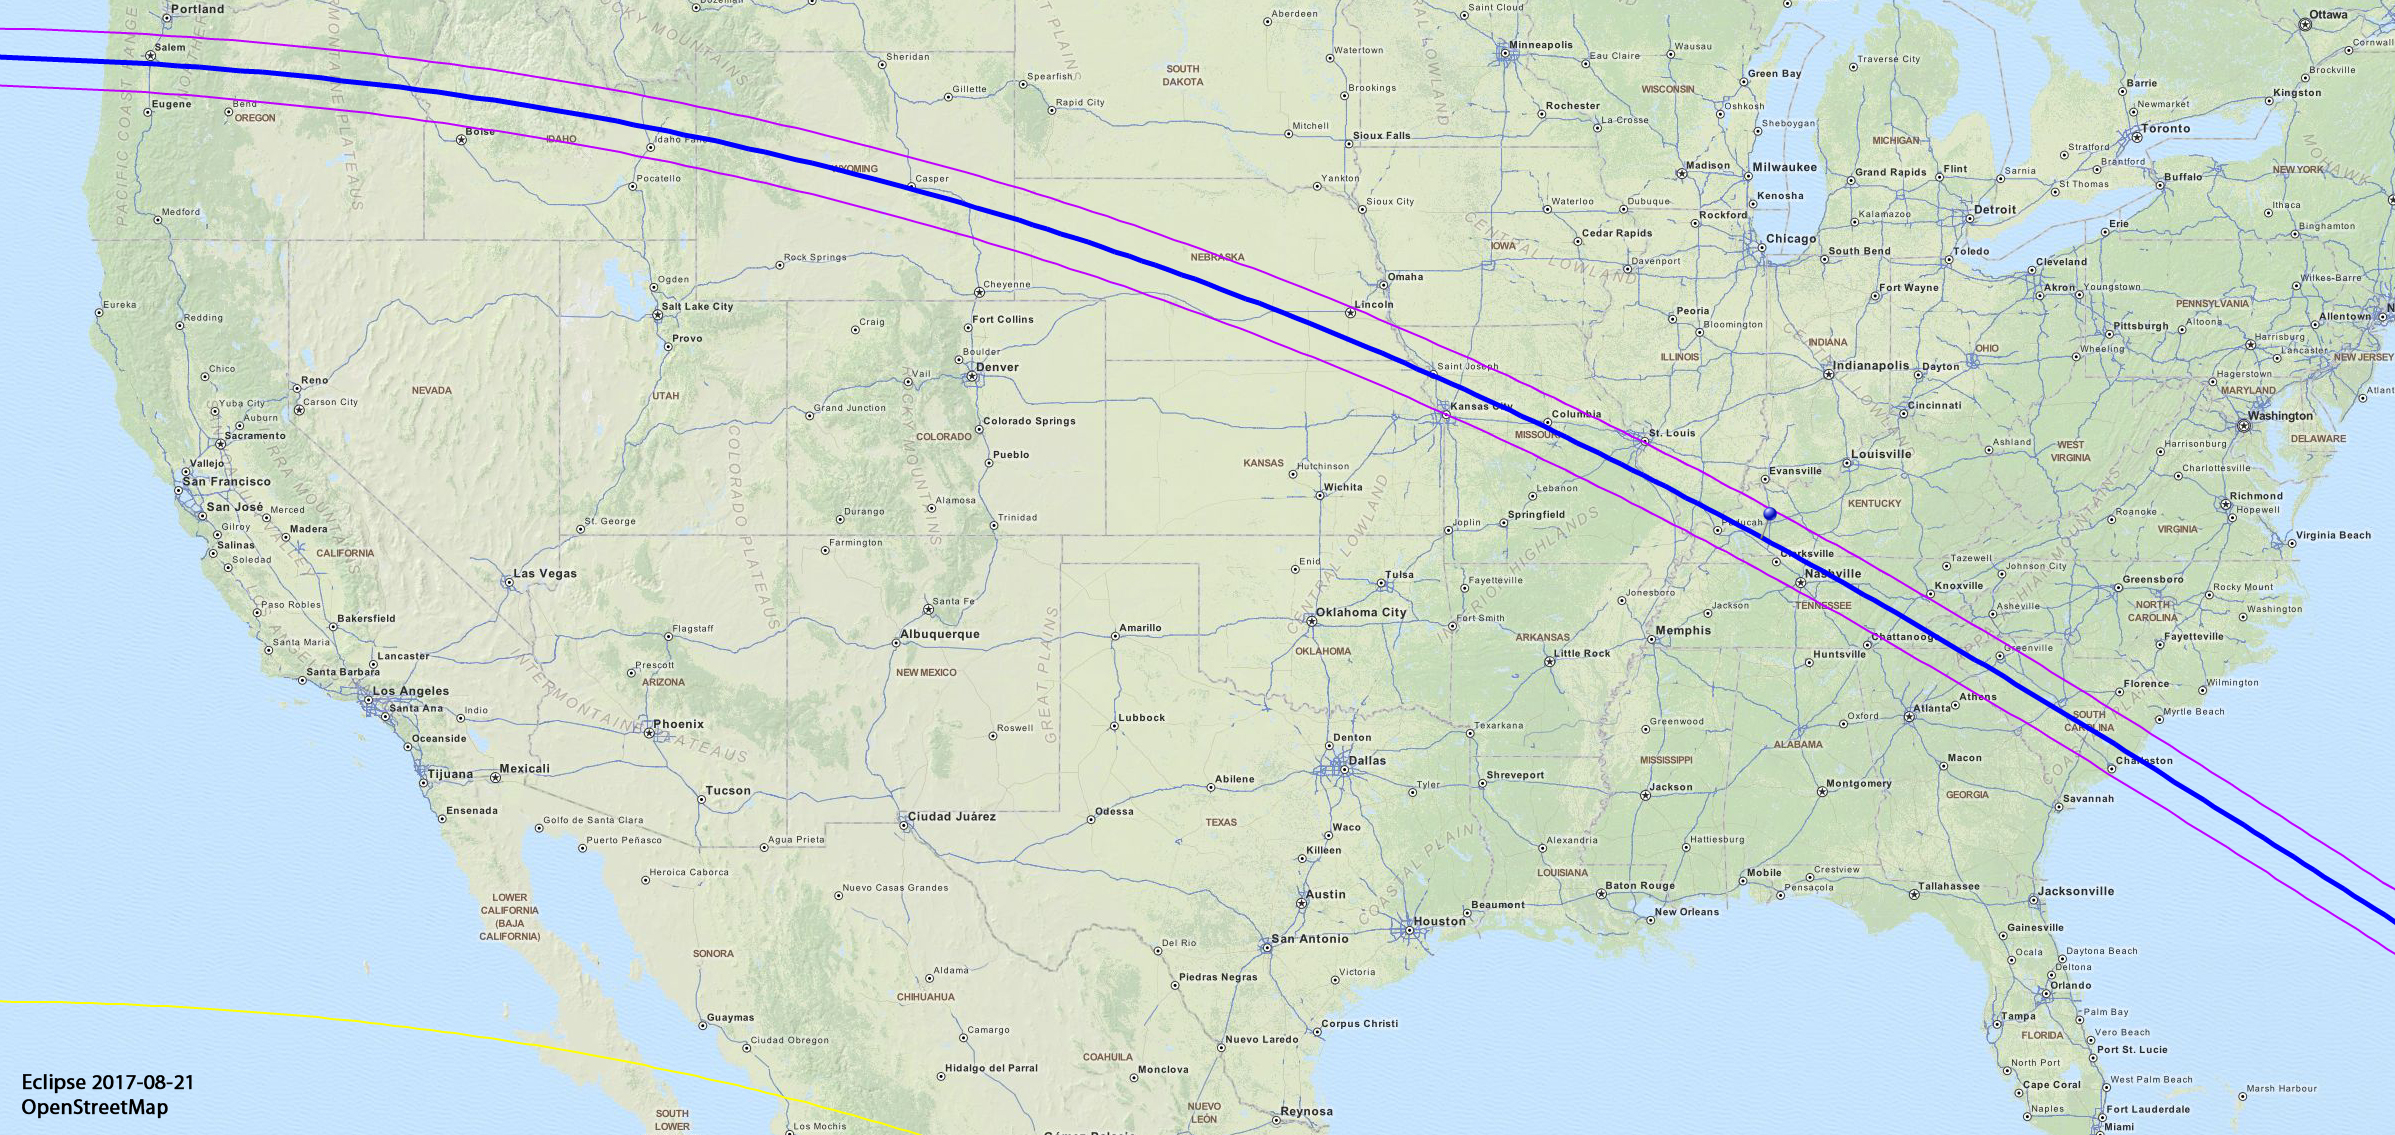 A map showing the path of the total eclipse of the sun in August 2017.